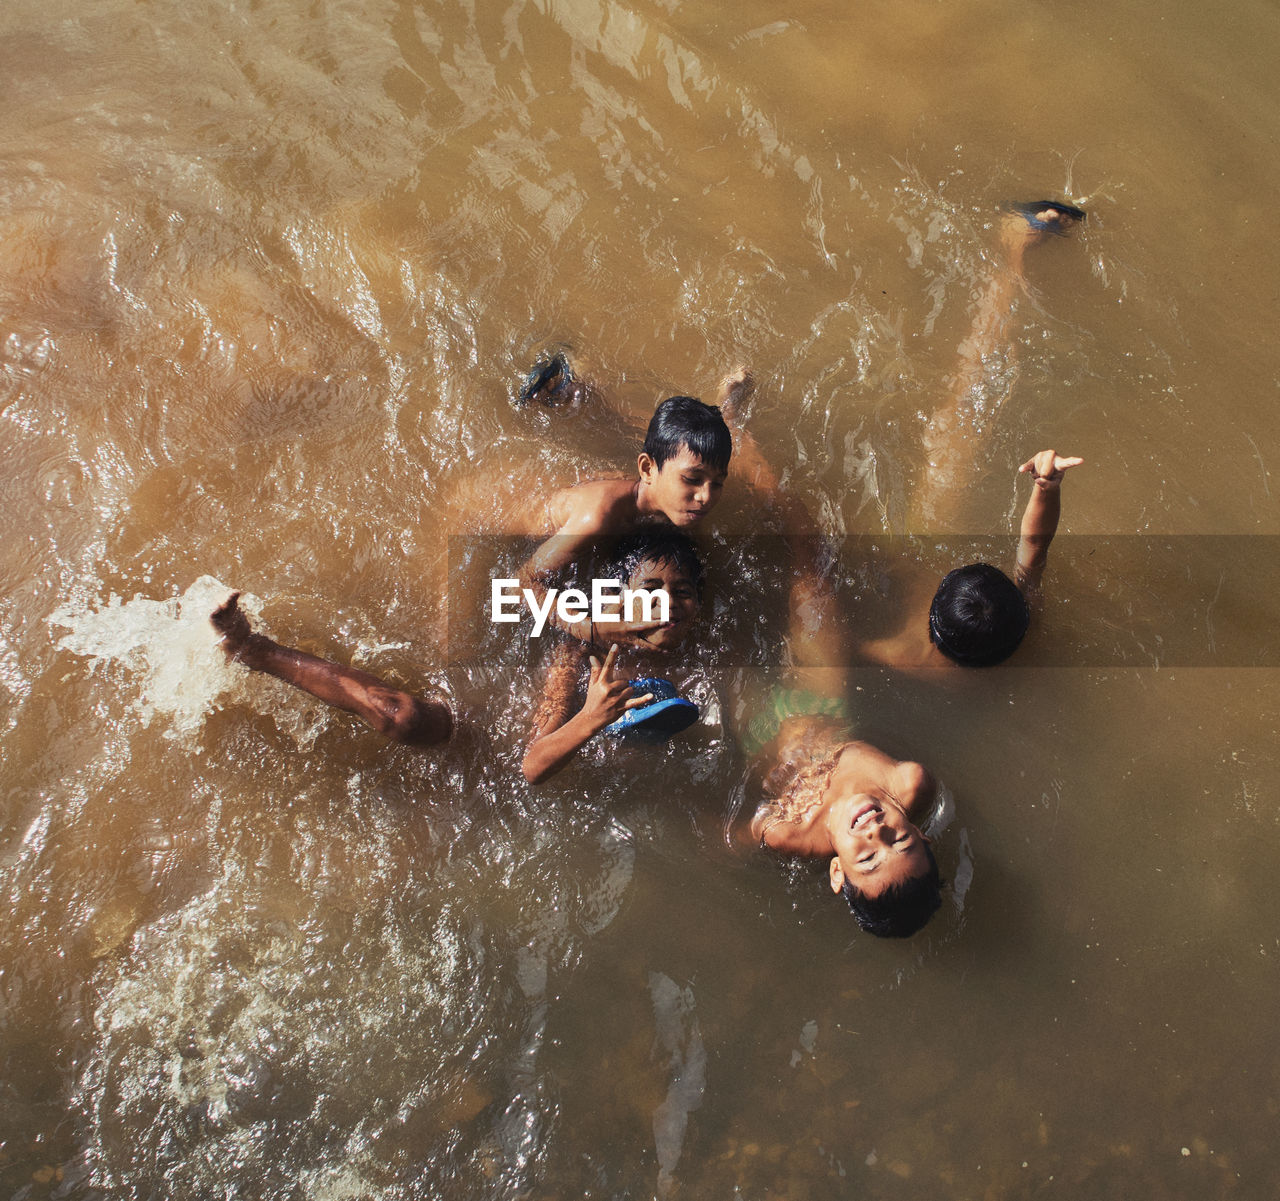 water, high angle view, group of people, leisure activity, nature, swimming, men, lifestyles, waterfront, people, togetherness, real people, enjoyment, shirtless, day, outdoors, motion